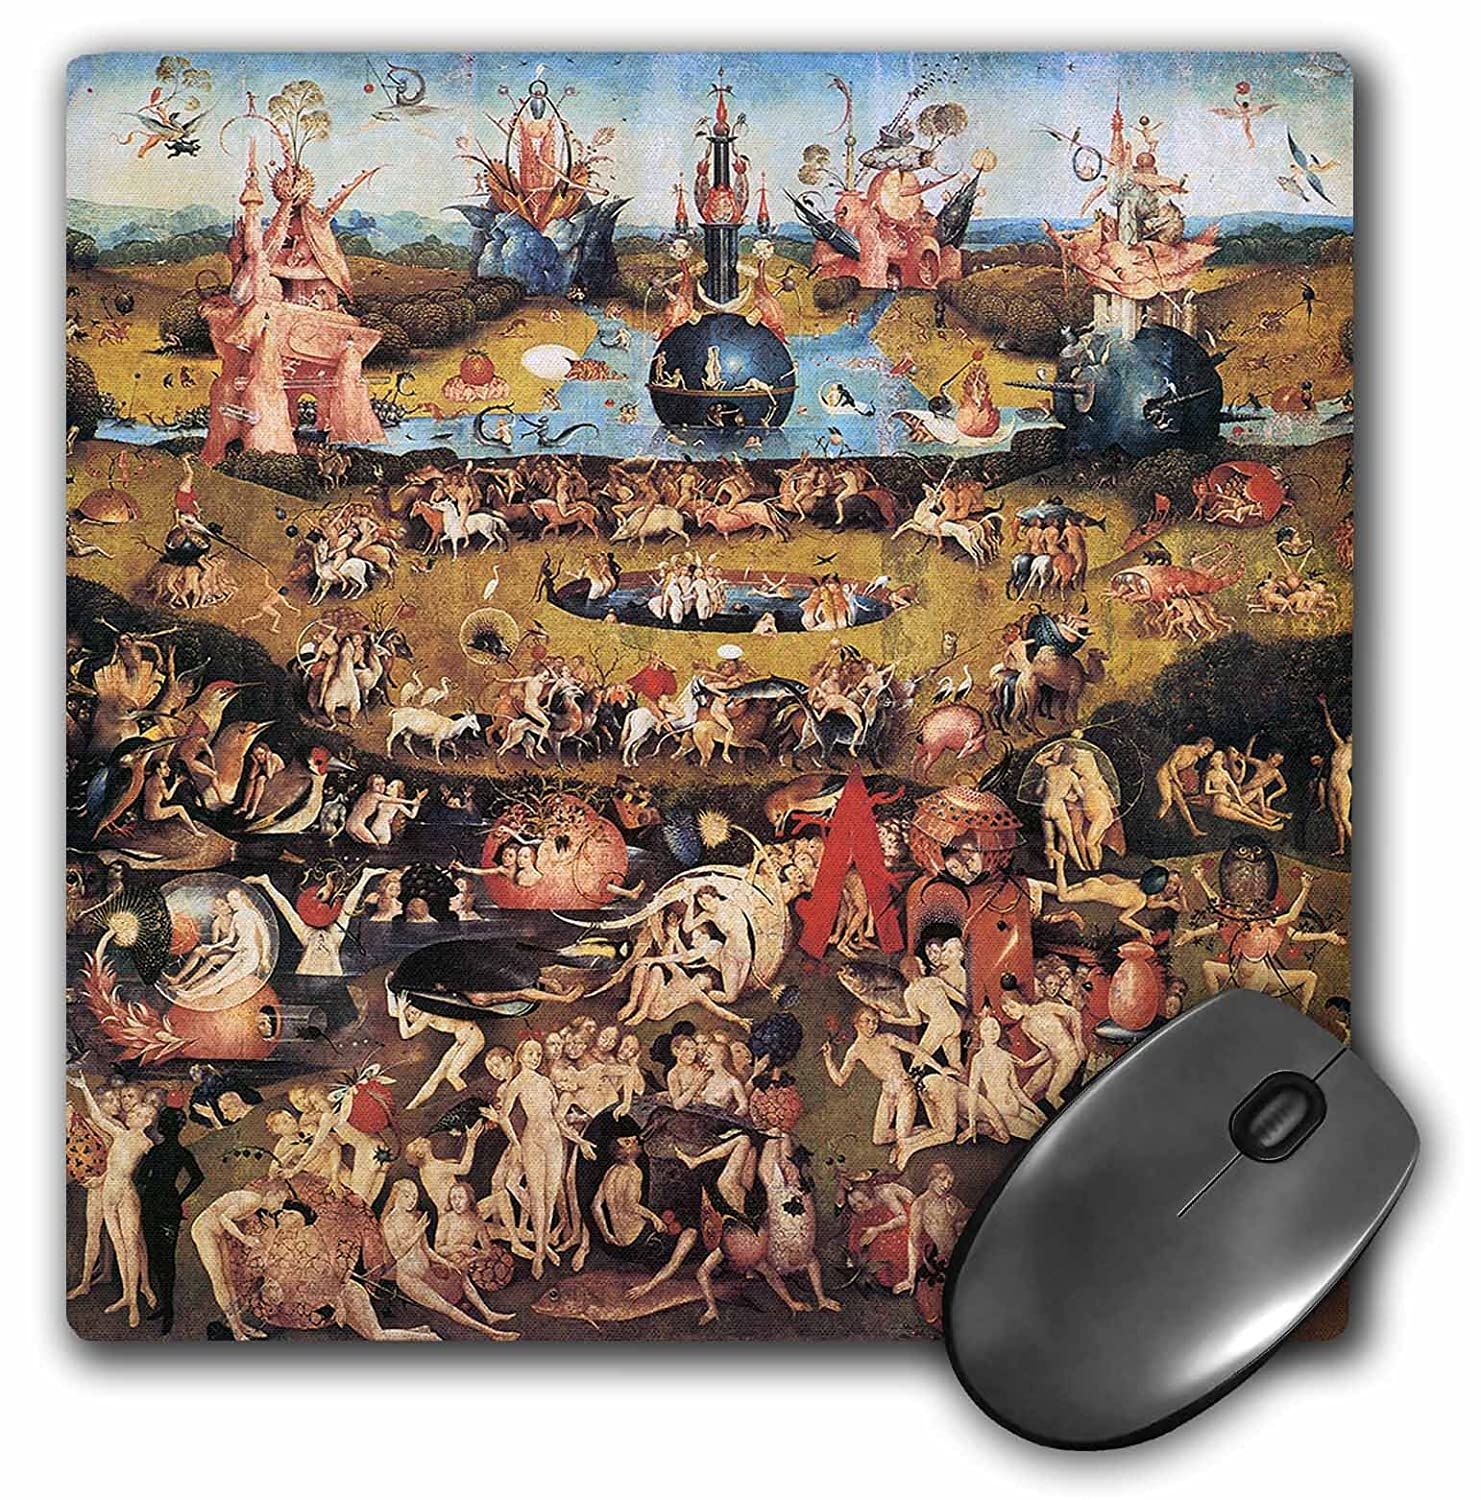 3dRose LLC 8 x 8 x 0.25 Inches Mouse Pad, Garden of Earthly Delights by Hieronymus Bosch (mp_130134_1)